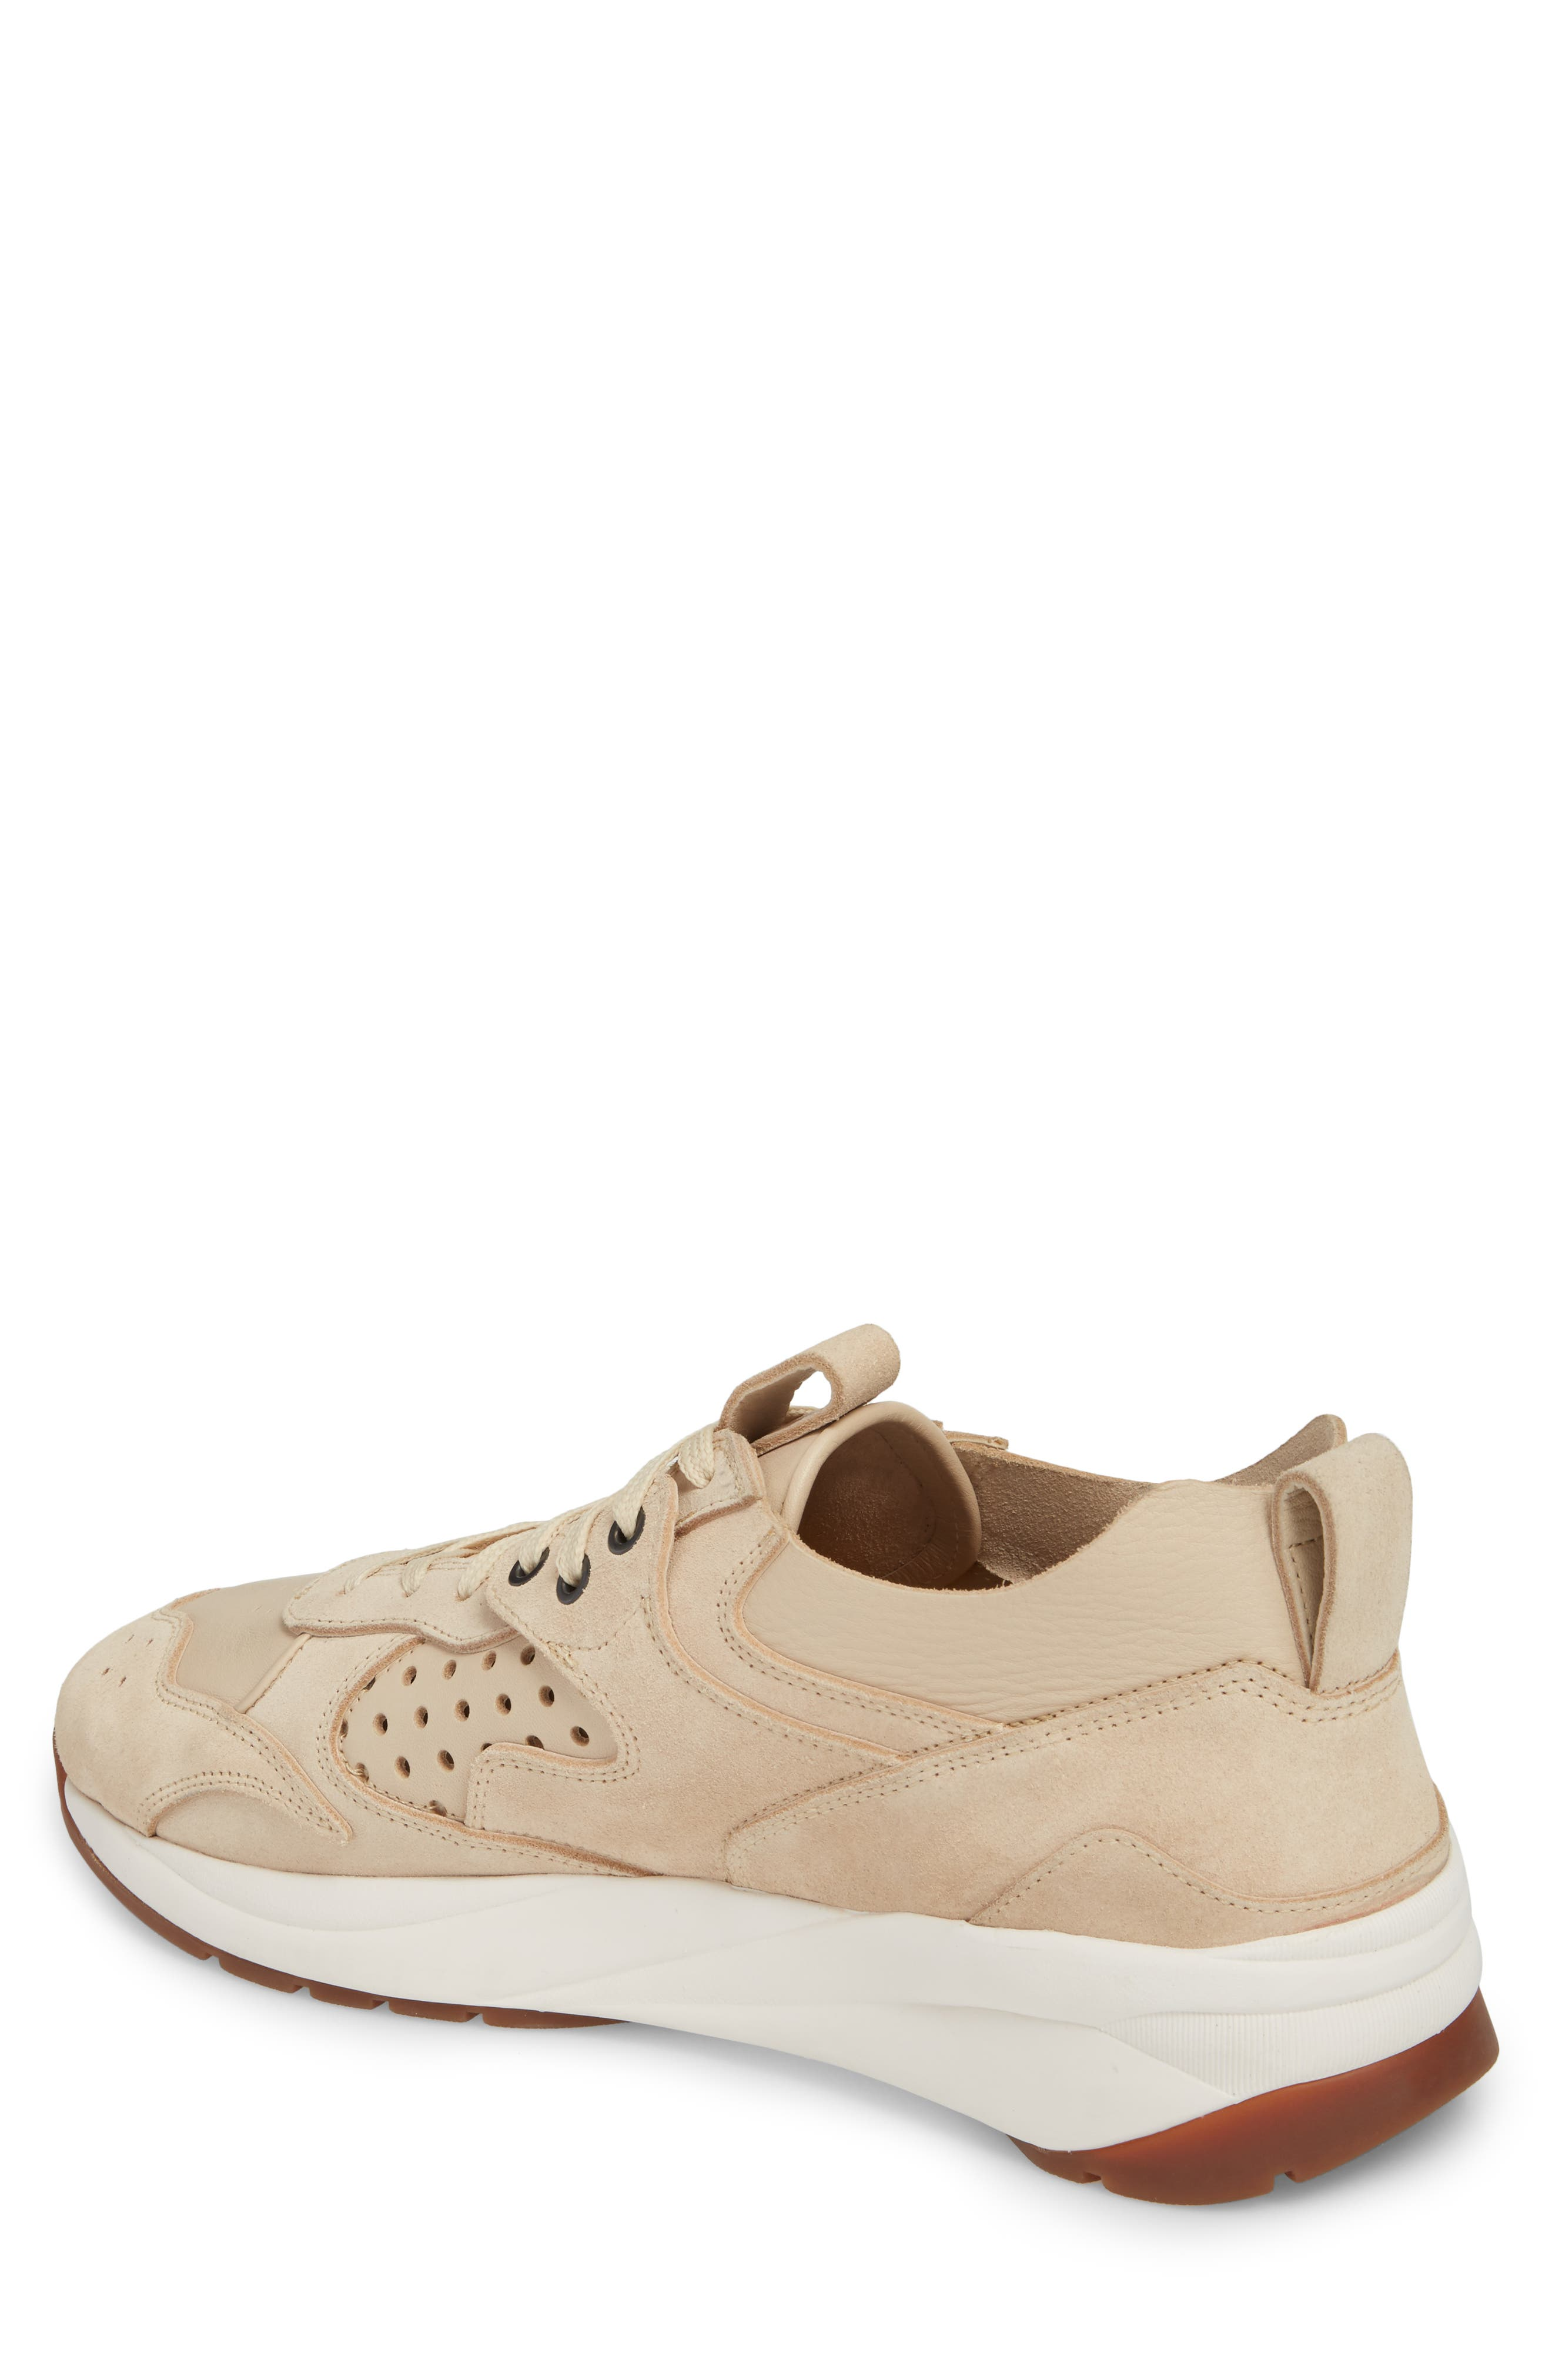 Champion Veloce Sneaker,                             Alternate thumbnail 2, color,                             Beige Suede